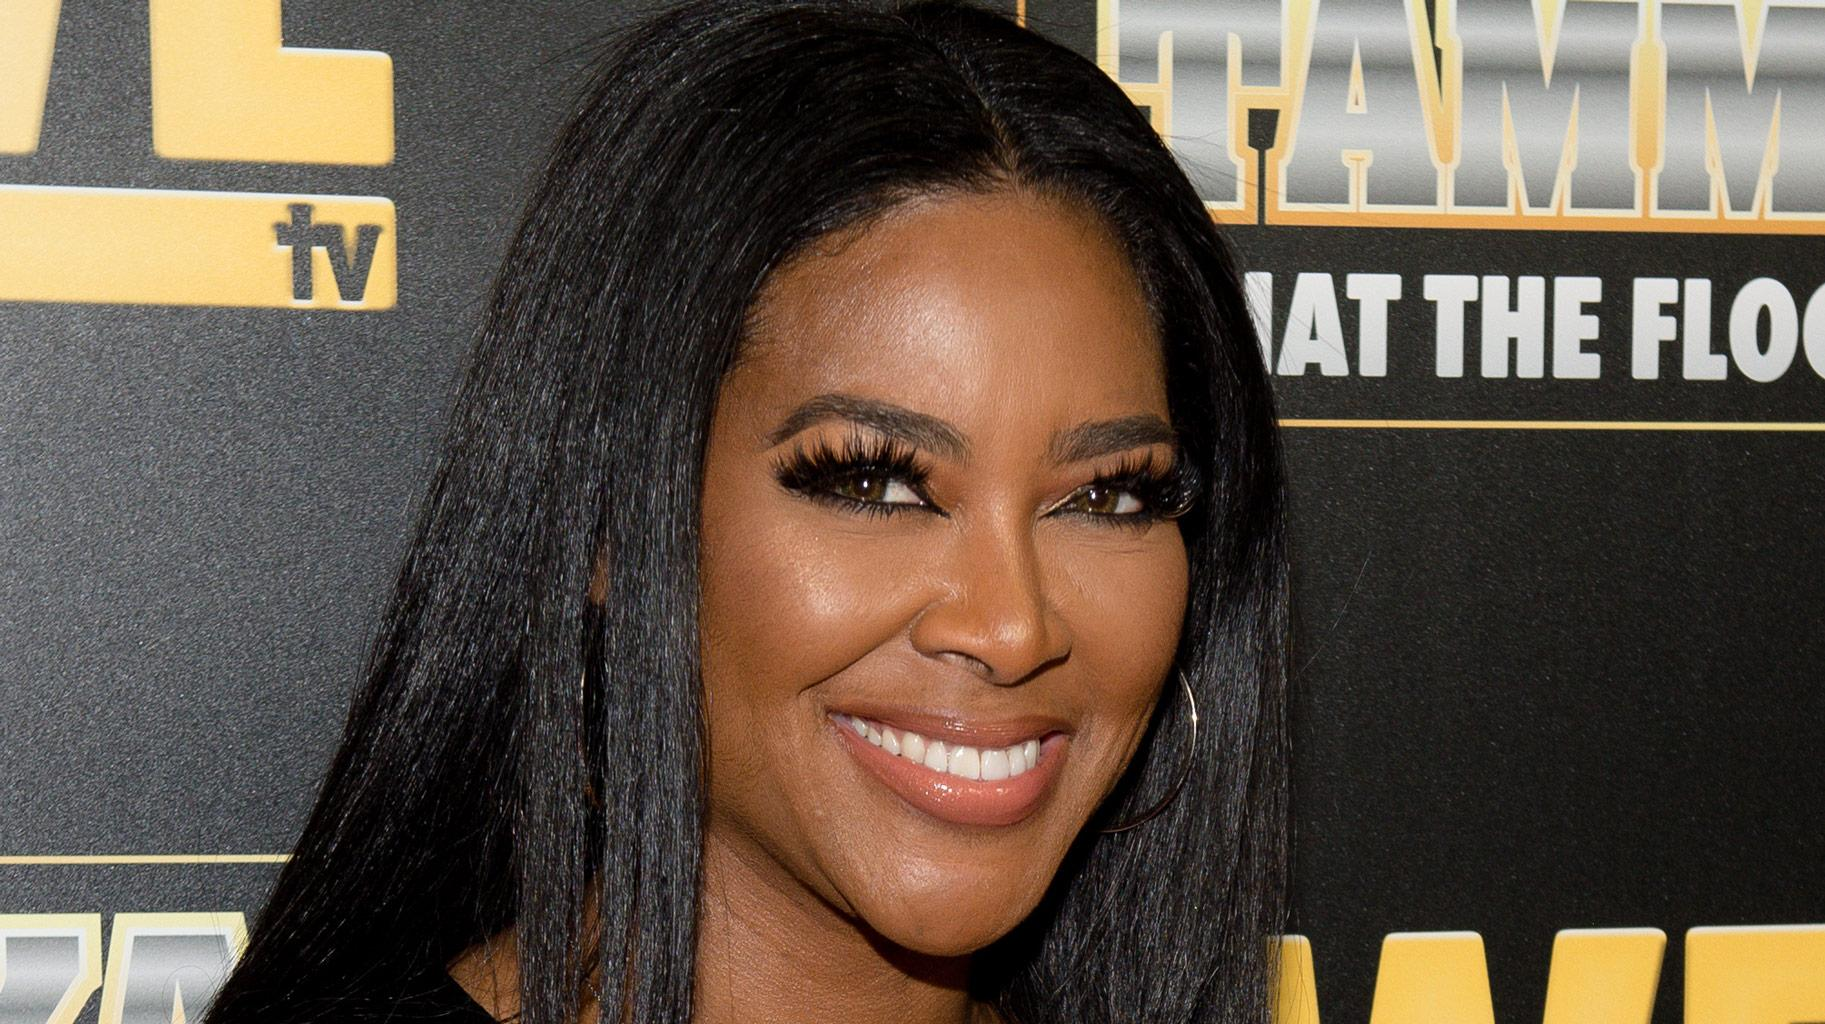 Kenya Moore Is Addressing The Subject Of Infertility - Read Her Message